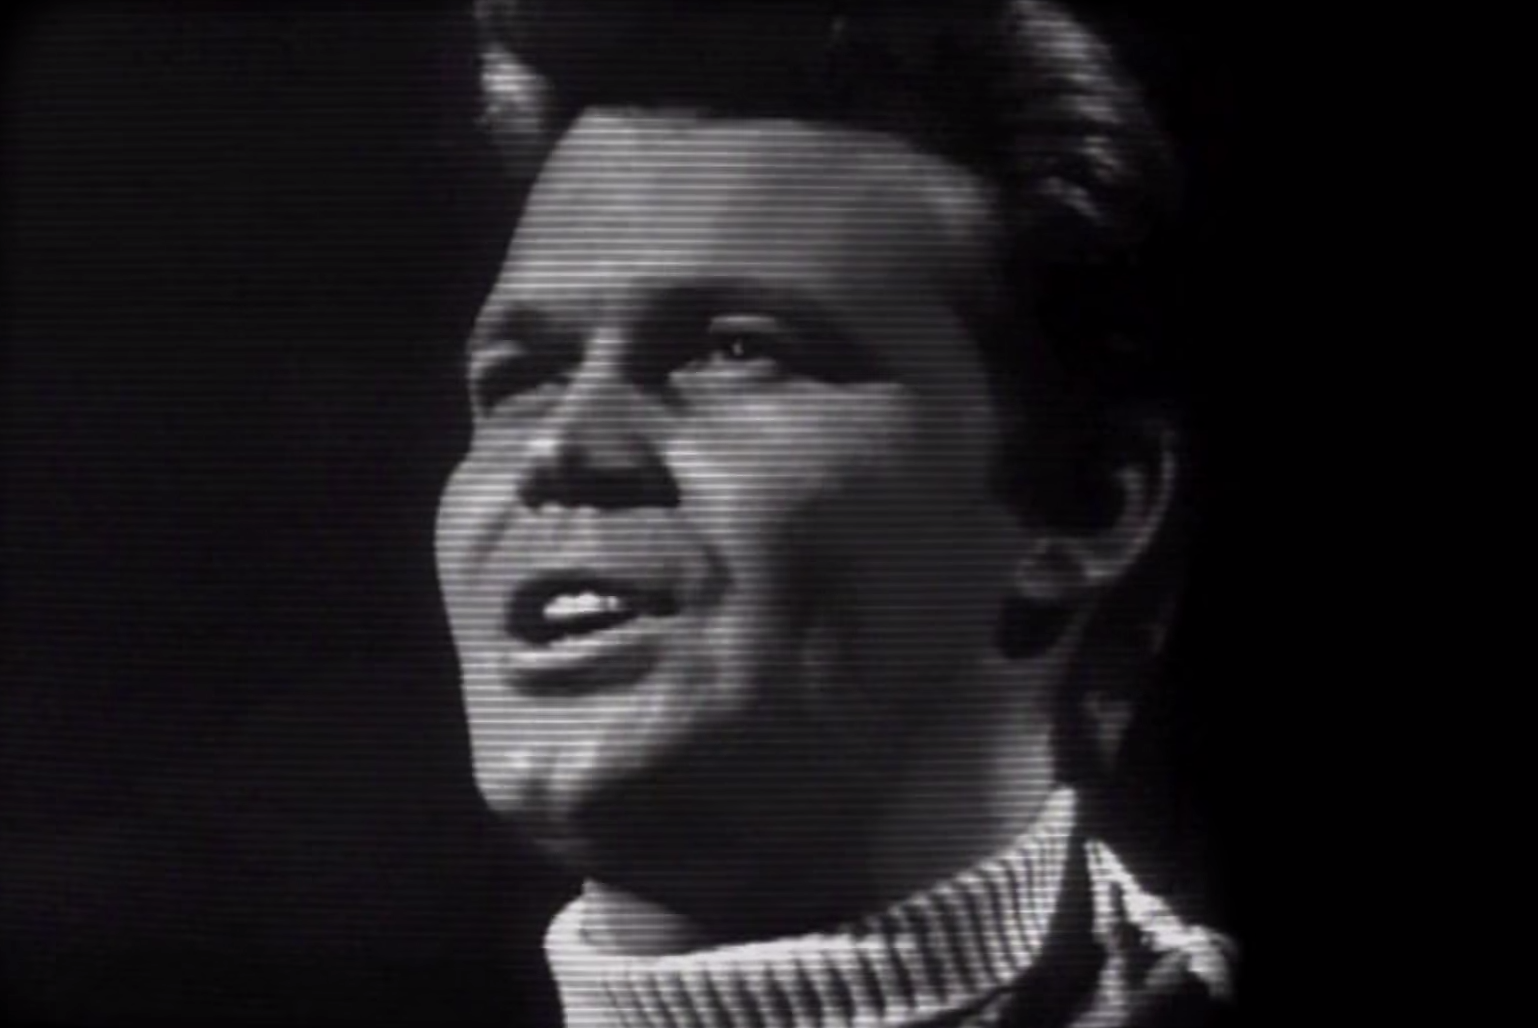 GLEN CAMPBELL I'LL BE ME Official Movie Trailer